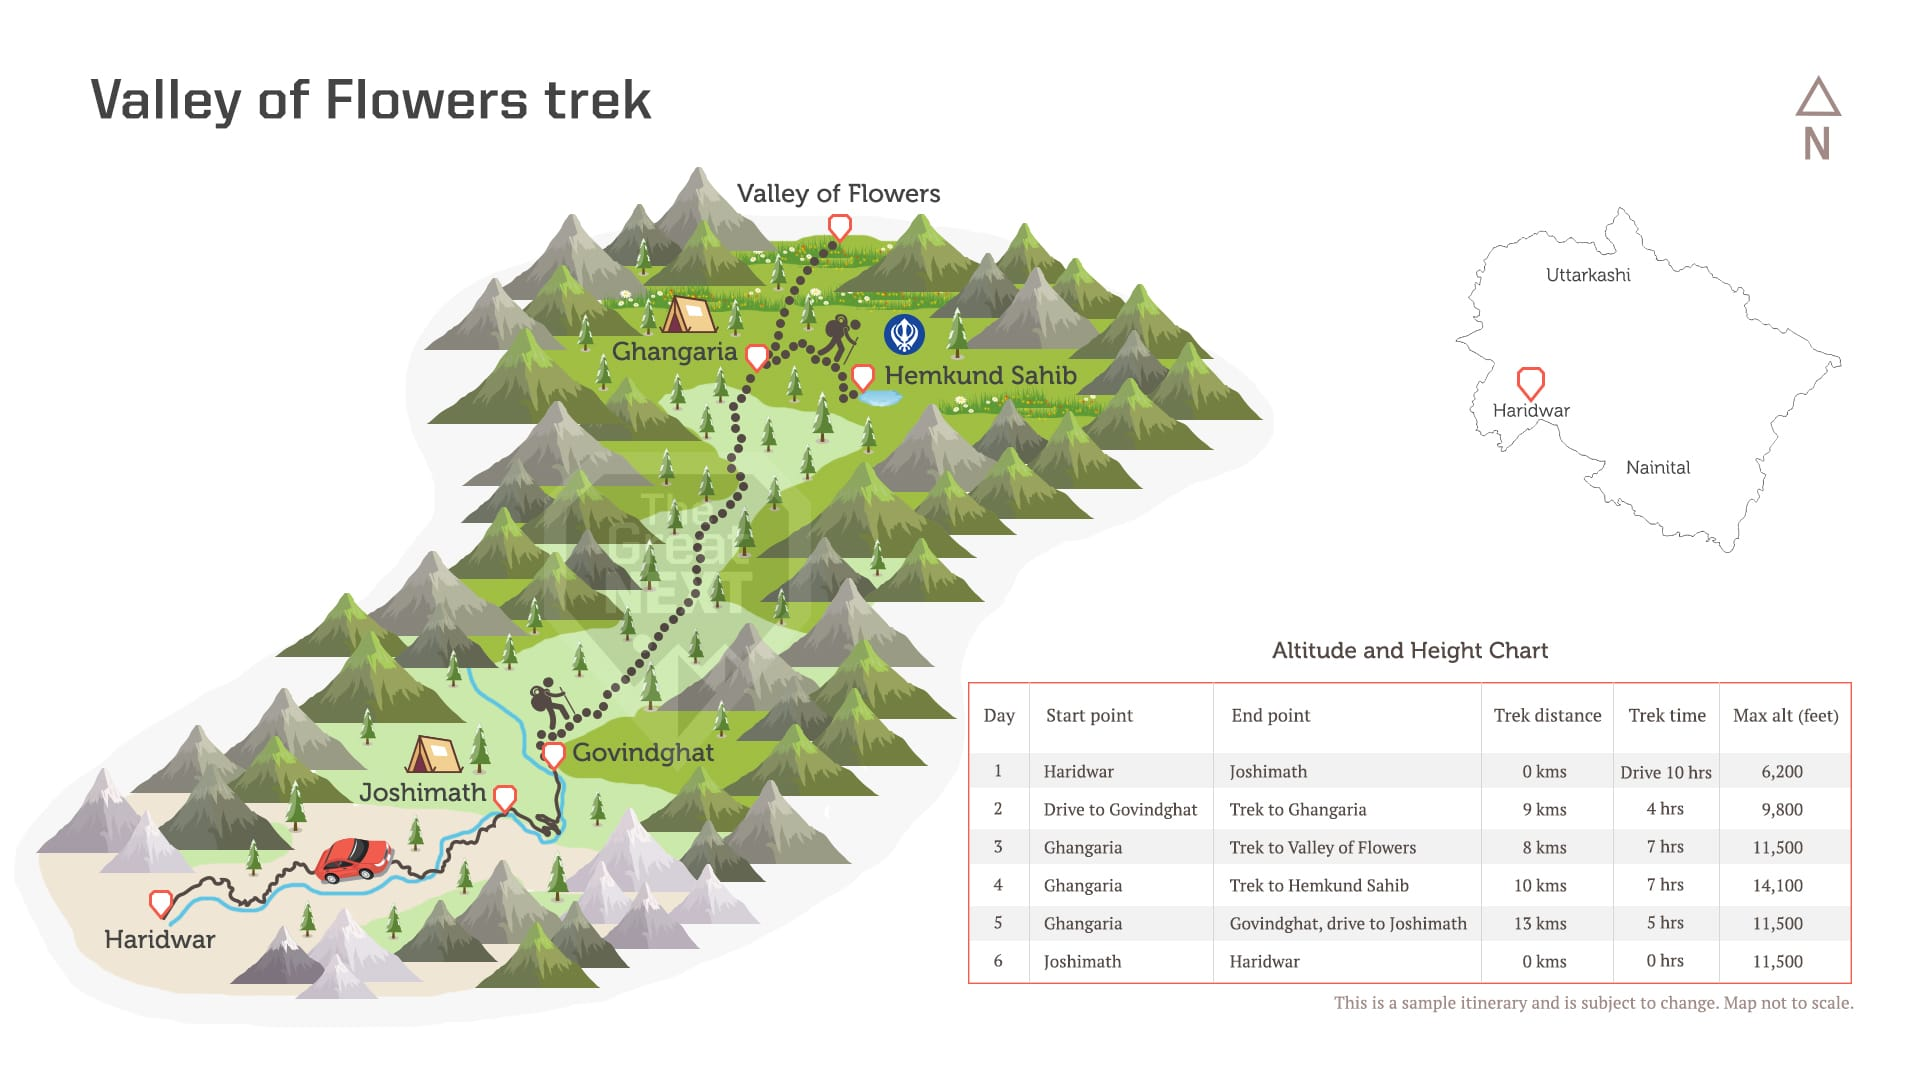 See the trekking route map for the the Valley of Flowers trek in Uttarakhand.